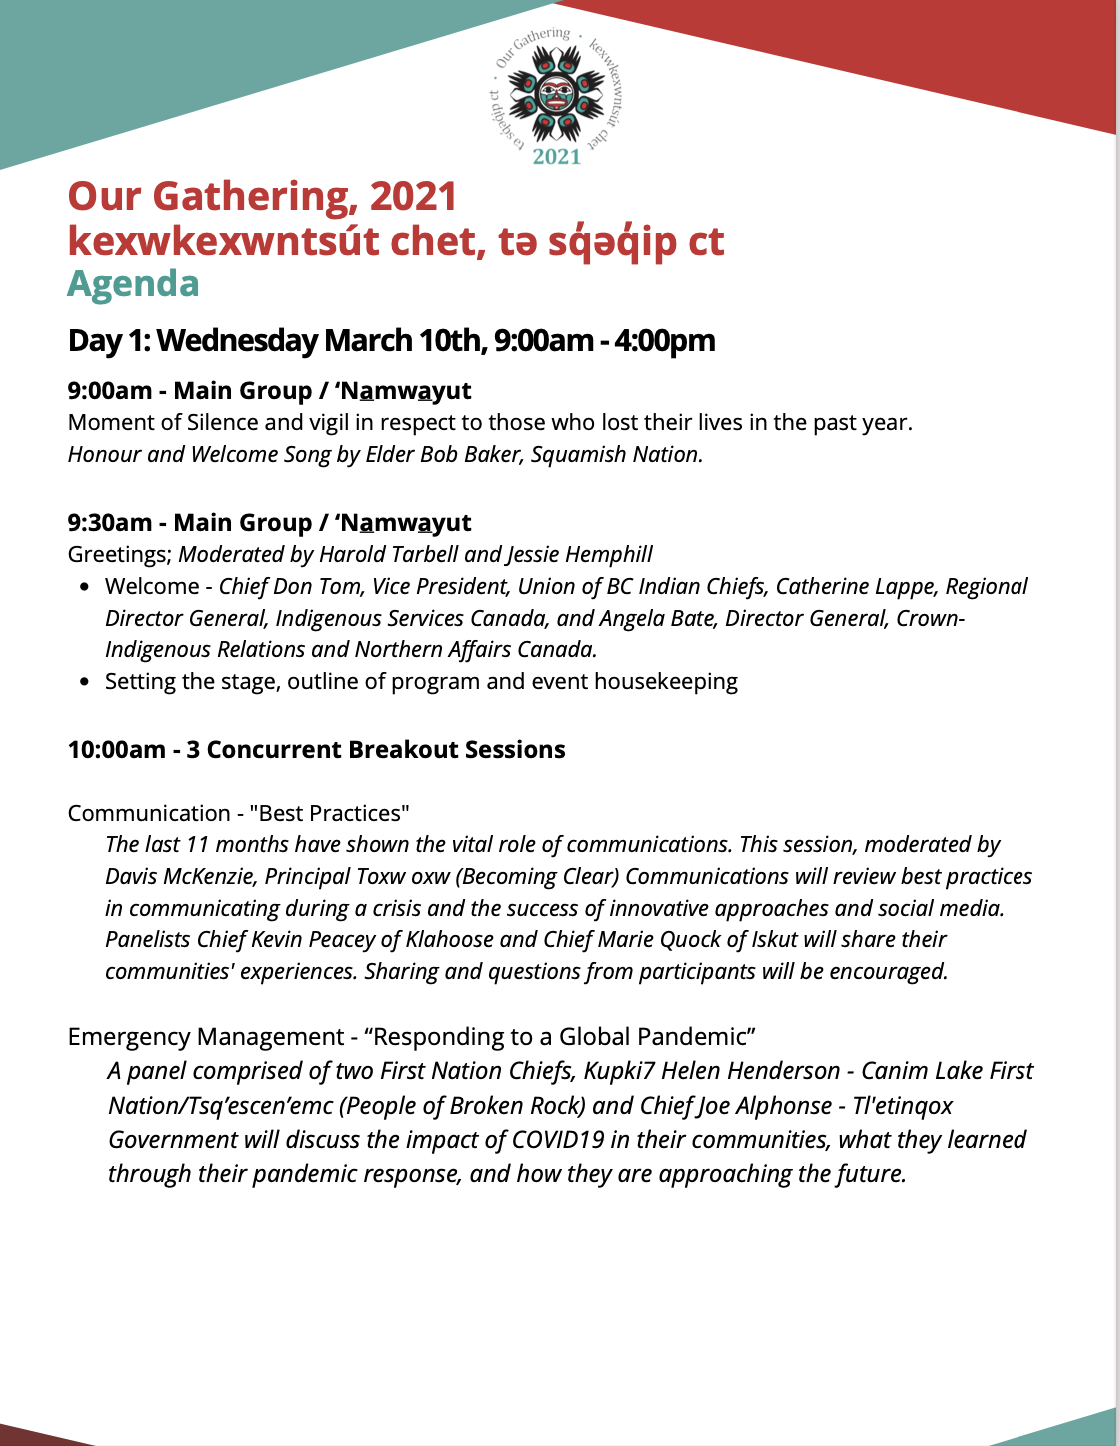 Our Gathering March 10th and 11th Agenda